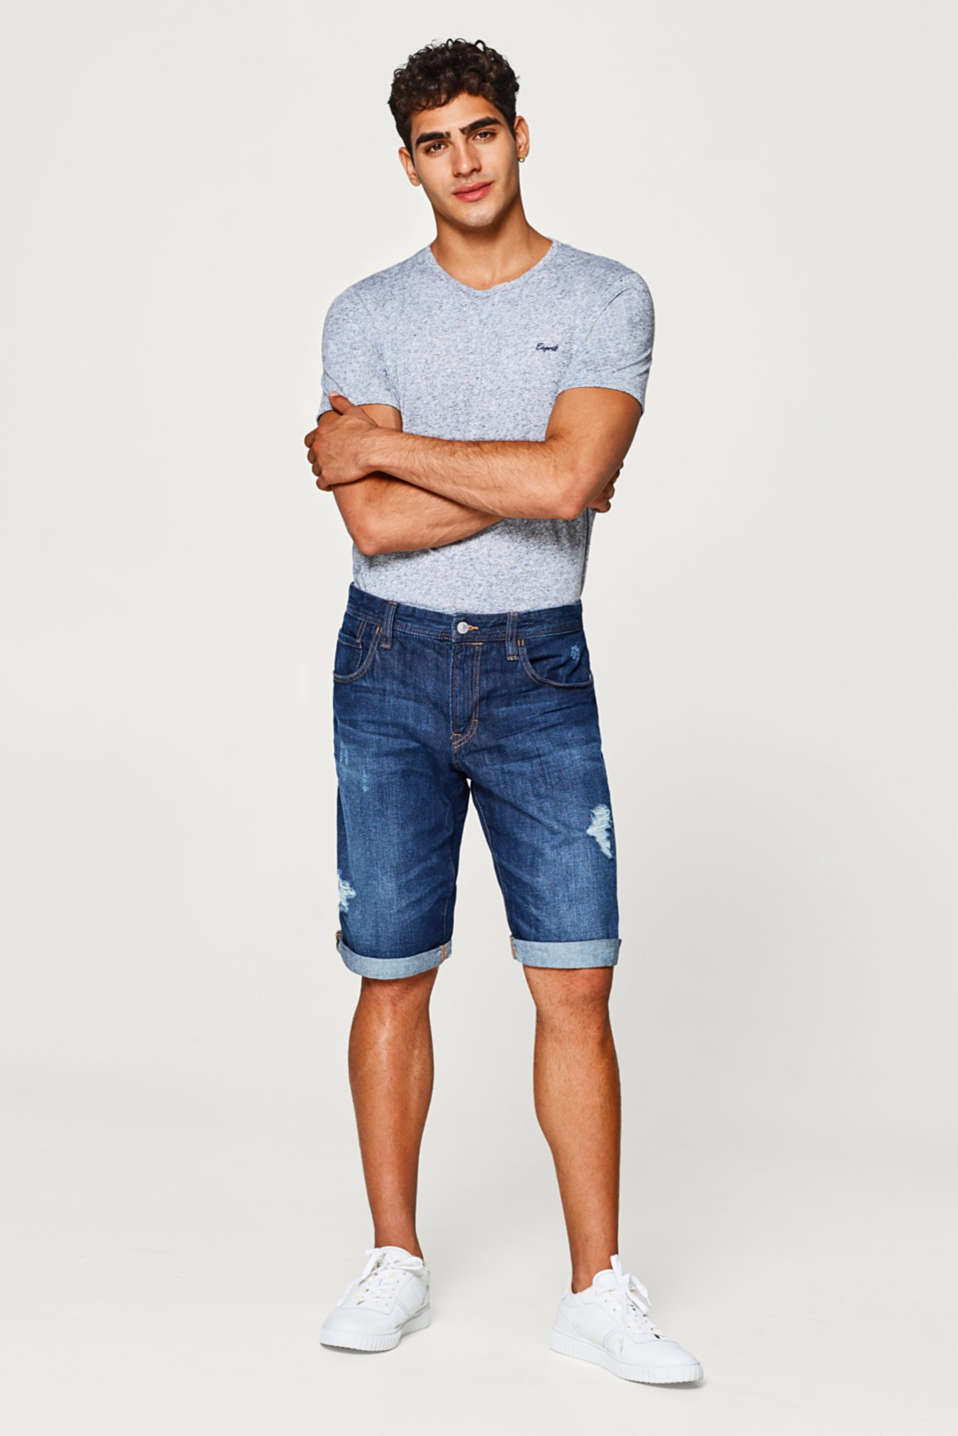 Denim shorts with distressed effects, made of cotton